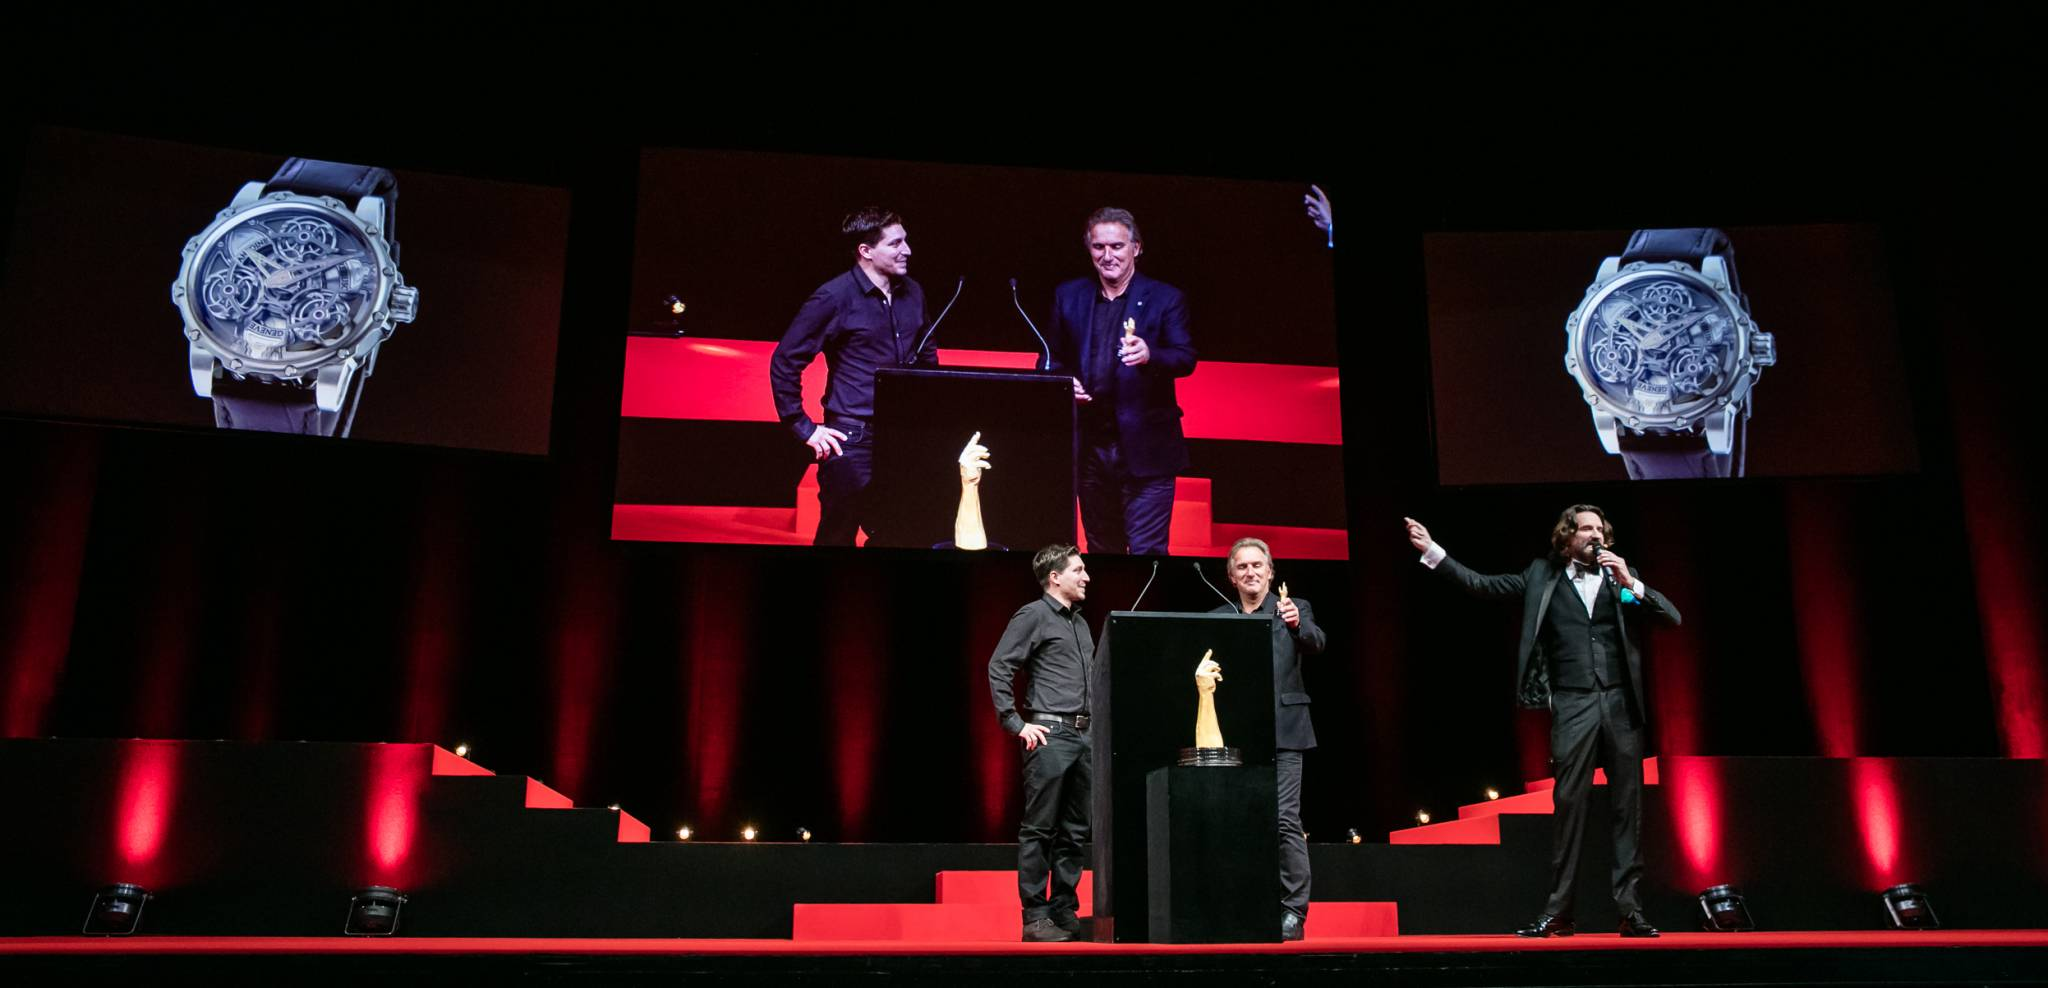 Antoine and Florian Preziuso (Founder of Antoine Preziuso and his son, winner of the Innovation Watch Prize 2015), with Frédéric Beigbeder (MC)